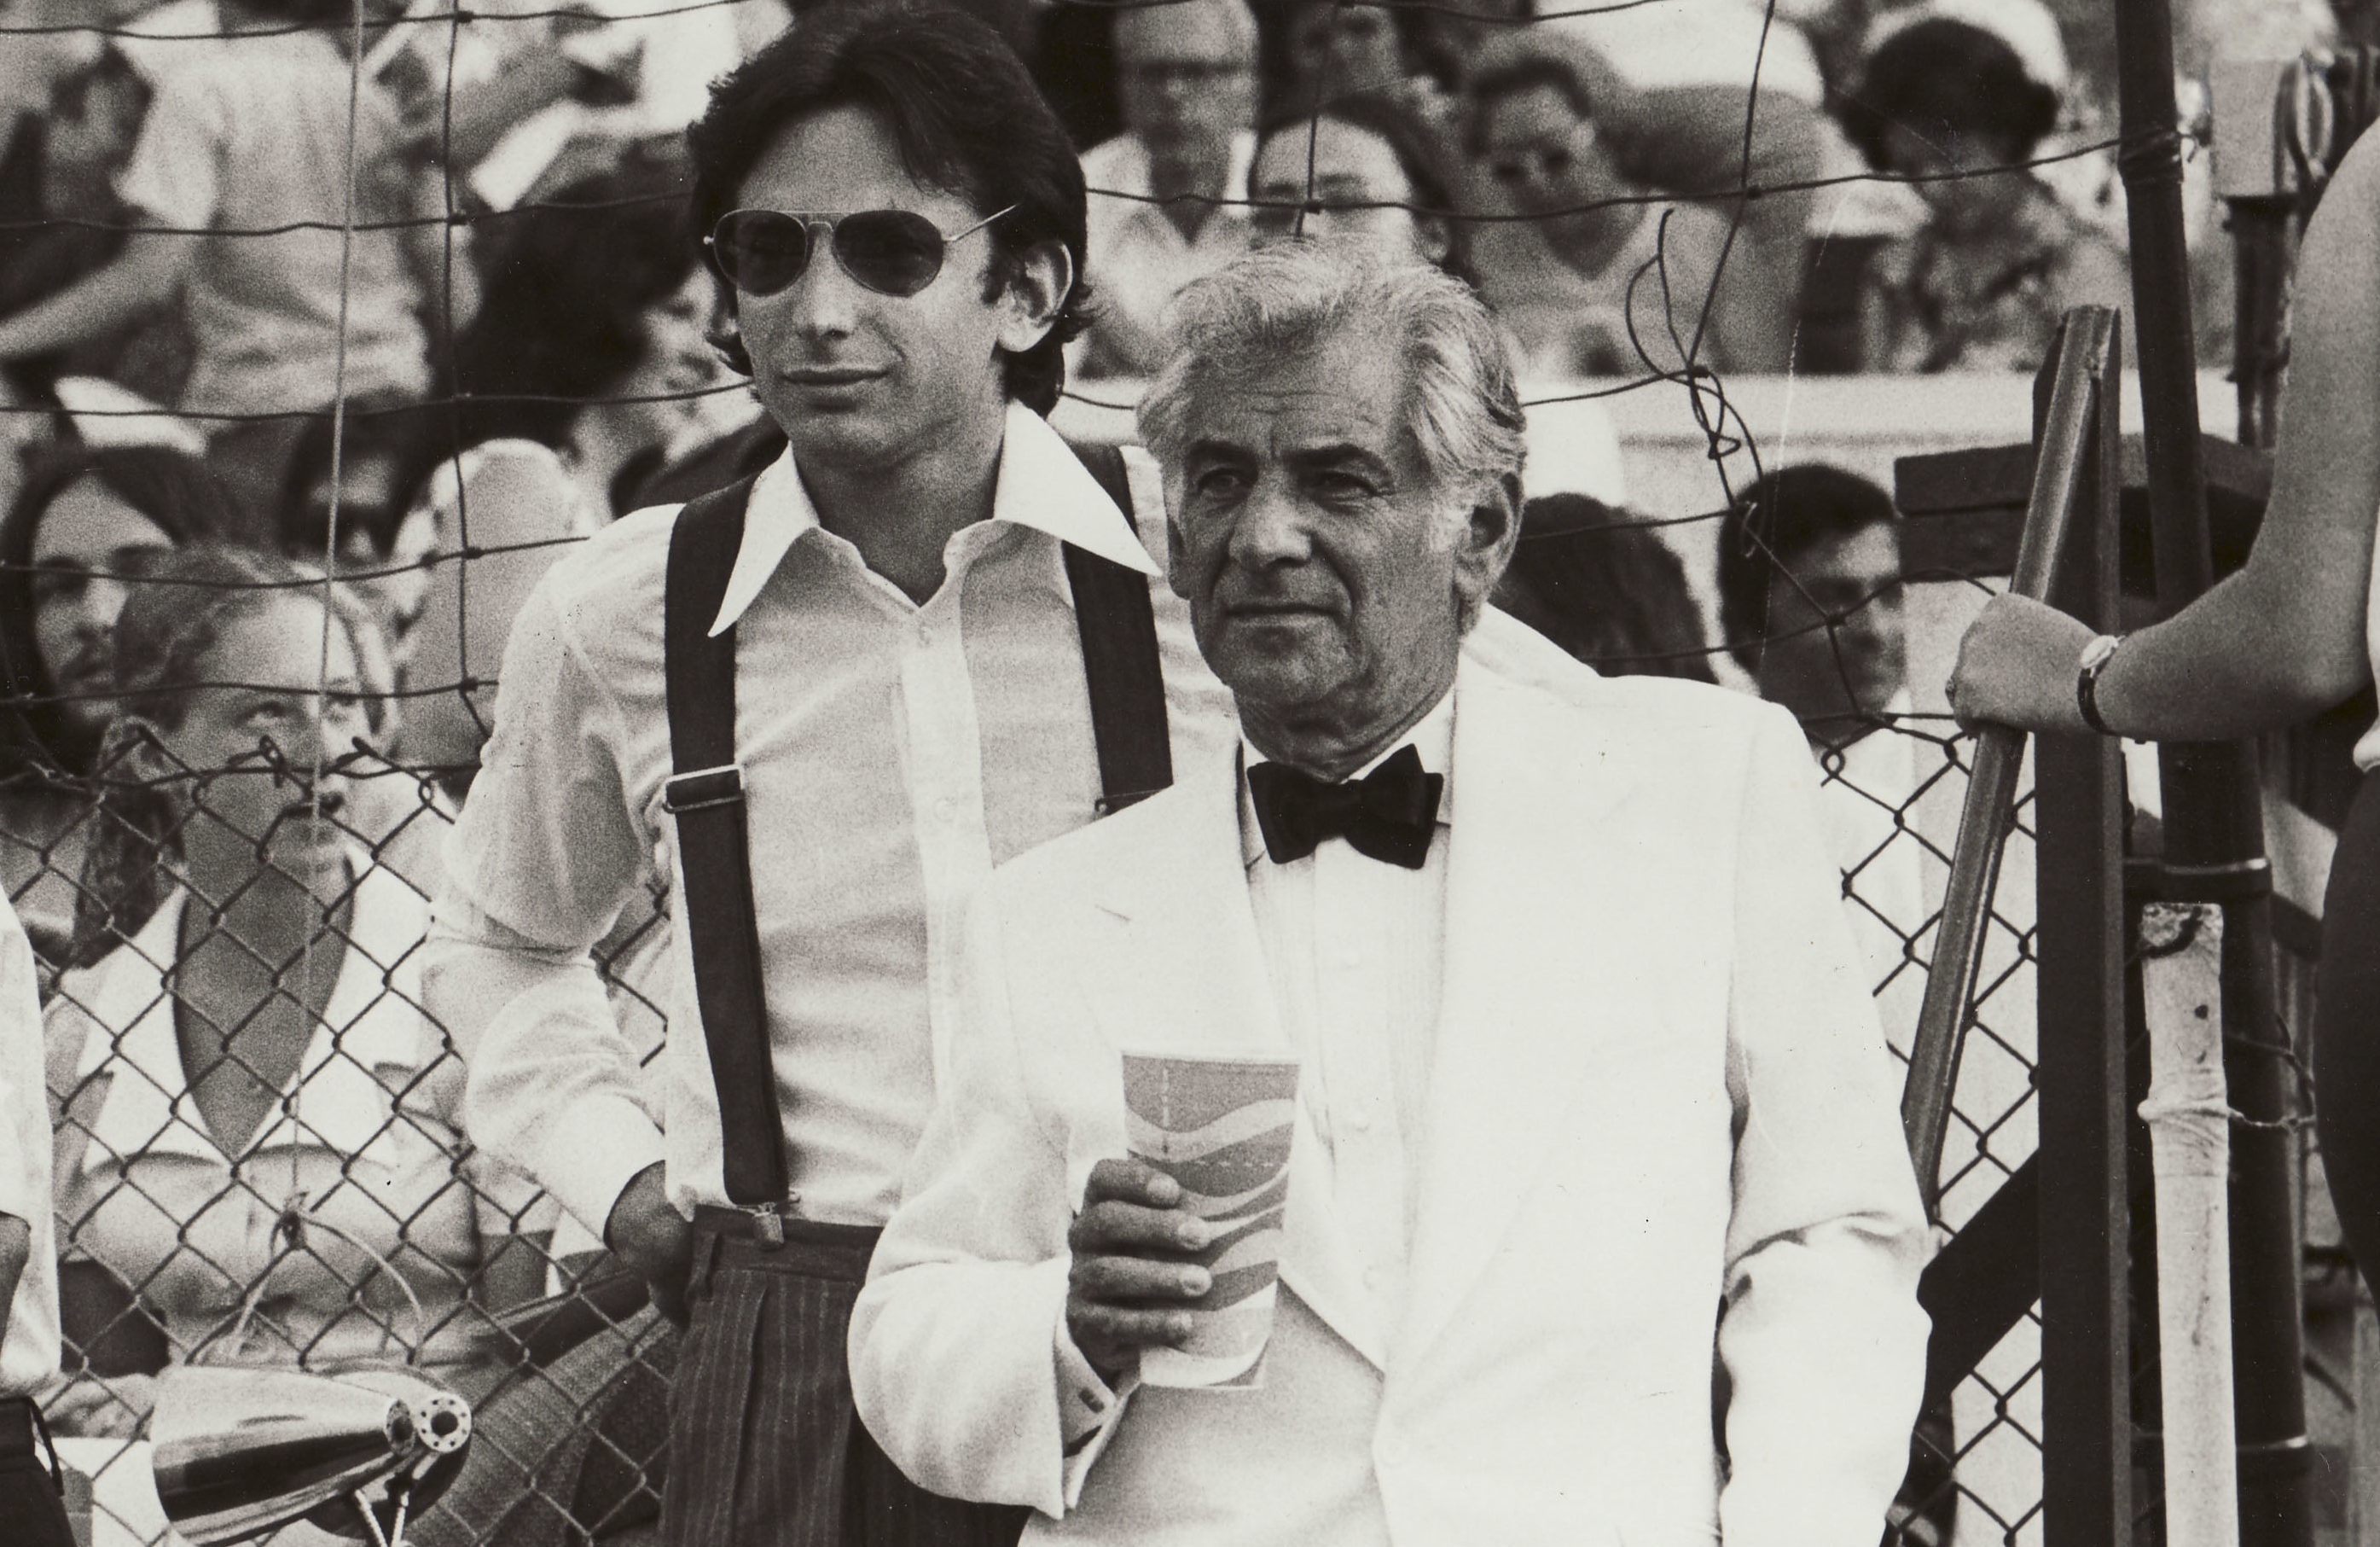 Michael Tilson Thomas and Leonard Bernstein at the Danbury State Fair, 1974 (Photo/David Gahr)